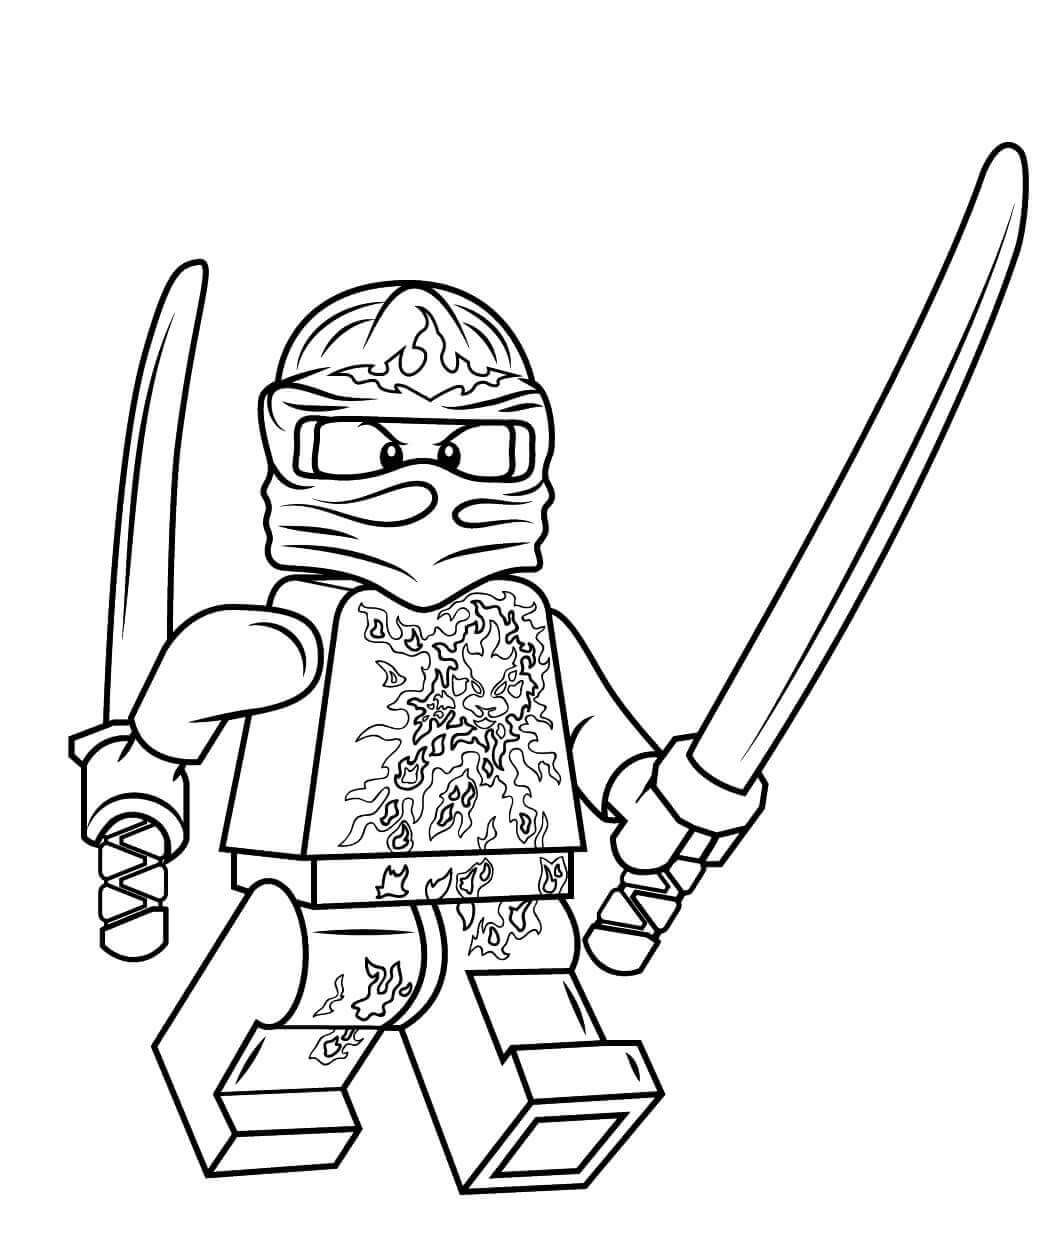 30 Free Printable Lego Ninjago Coloring Pages Ninjago Coloring Pages Lego Coloring Pages Super Coloring Pages